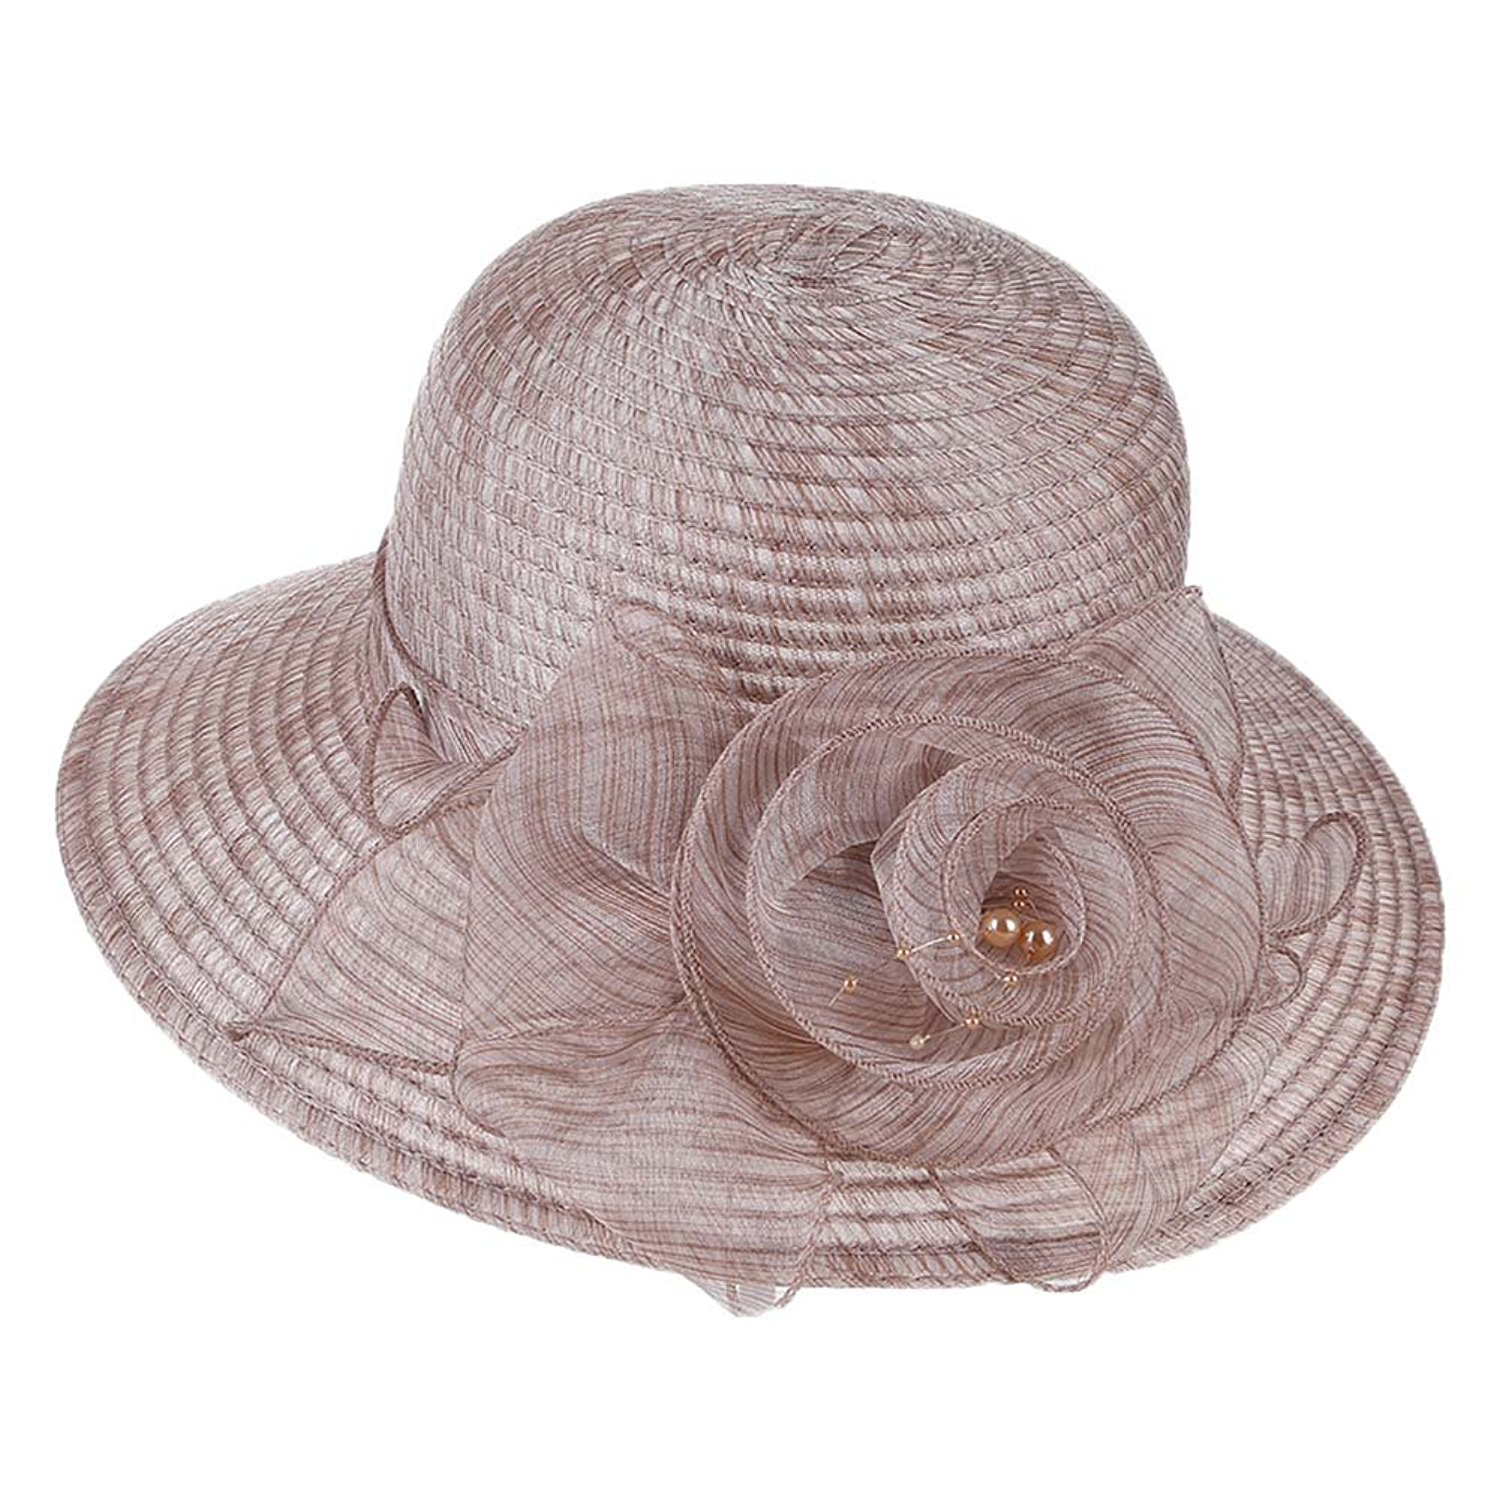 84fd6f4af49 Get Quotations · BUYITNOW Woman Summer Straw Beach Sun Hats For Women